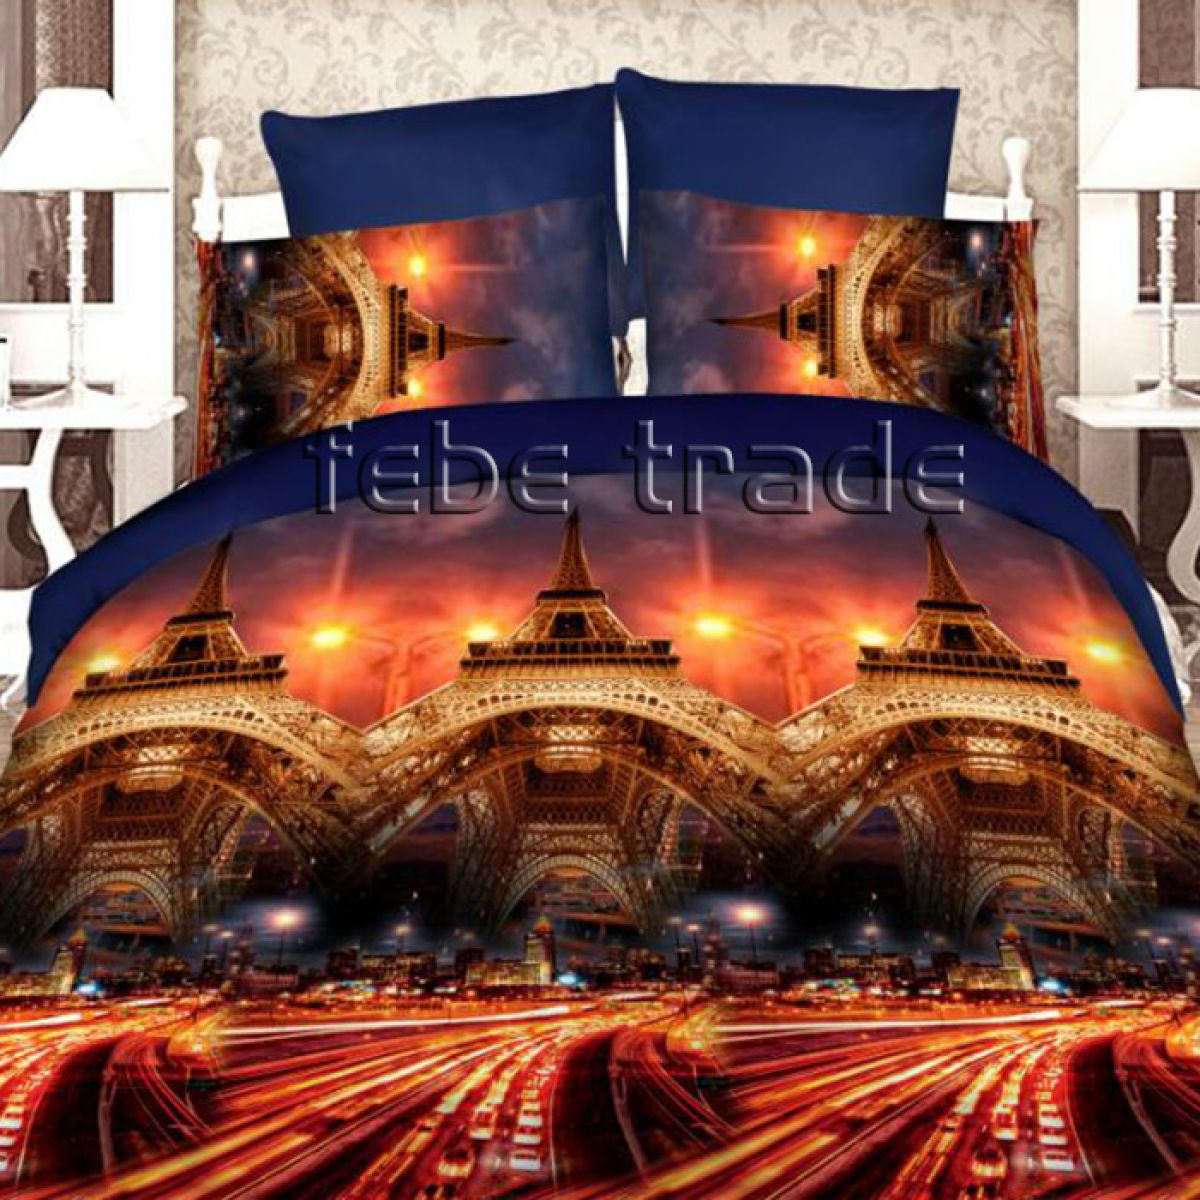 3D Beddings - Cotton World - FSP-712 - 220x200 cm - 3 pcs